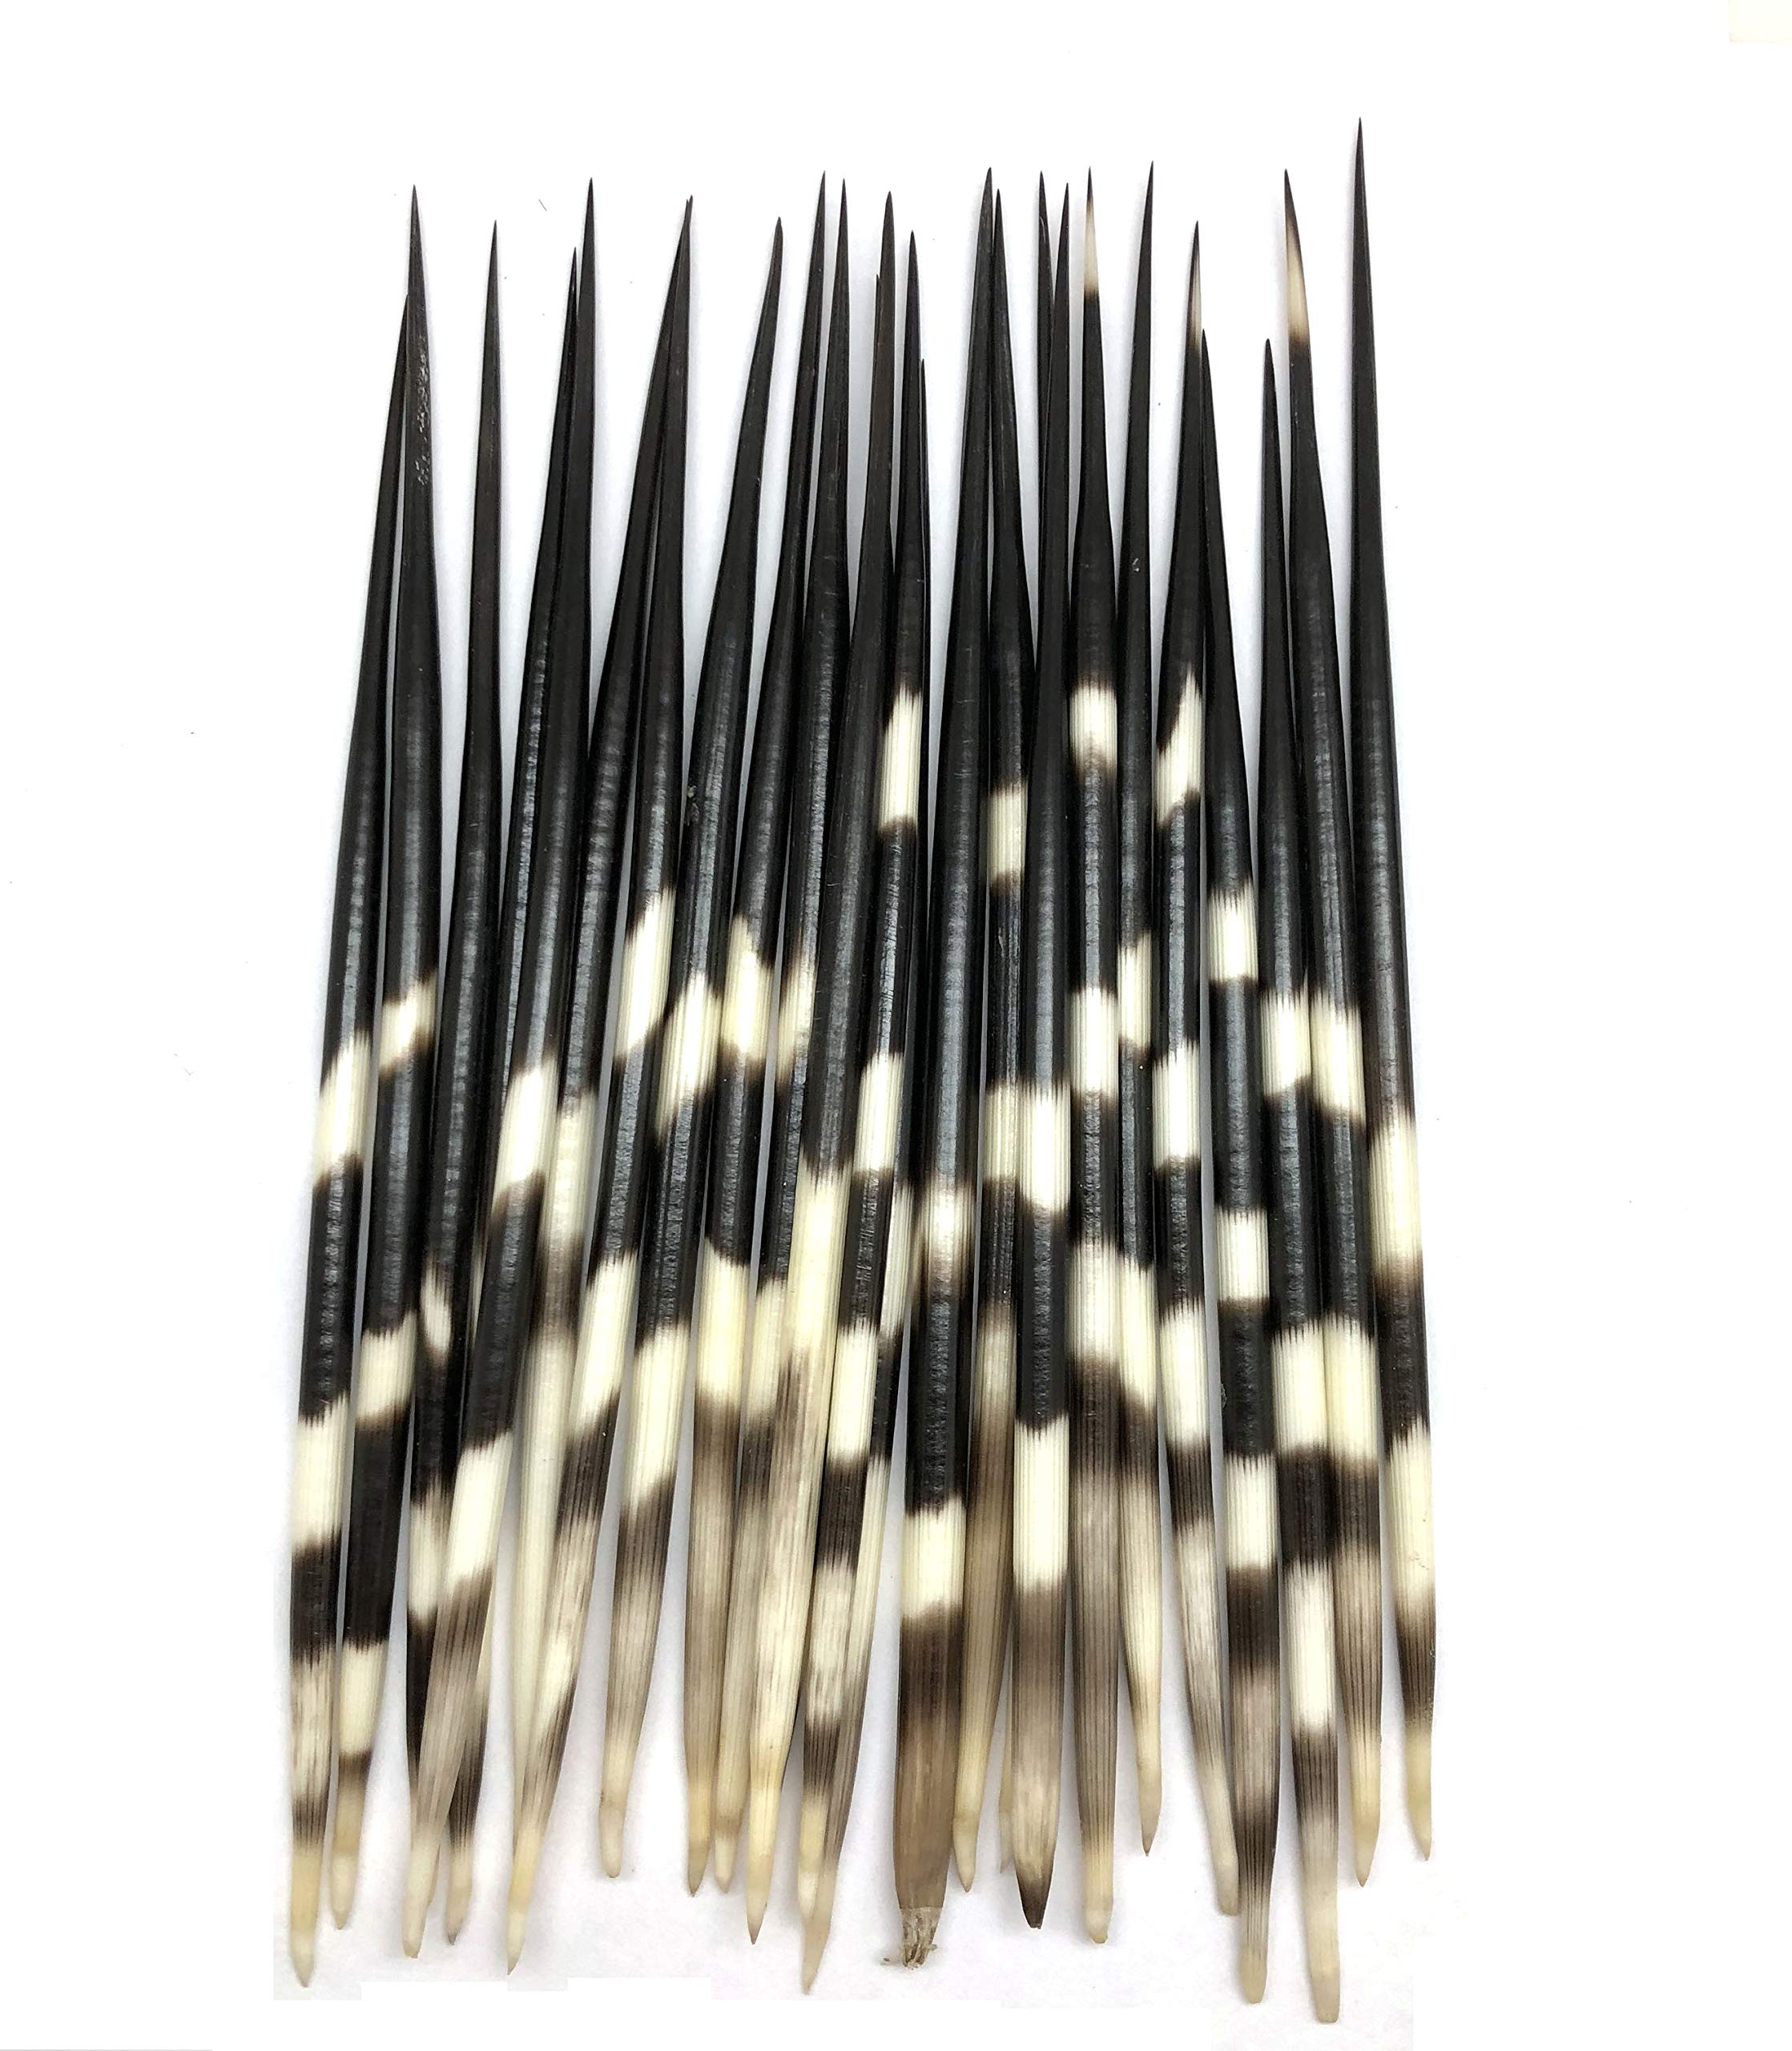 PEPPERLONELY 3PC Thick South Africa Porcupine Quills (8 Inch ~ 10 Inch) by PEPPERLONELY